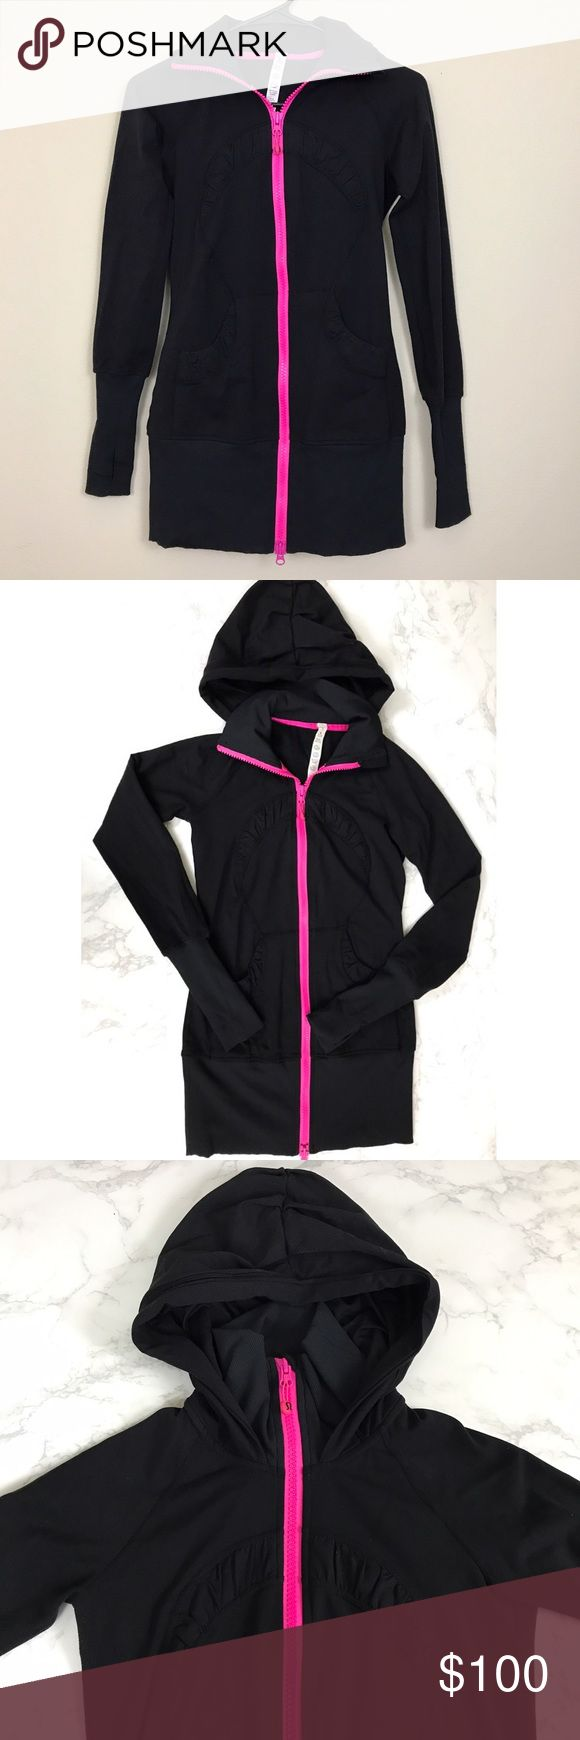 Lululemon Black Zip Up Hoodie w/ Hot Pink Zipper Size 2▪️ In excellent condition; no stains, holes, or flaws▪️Longer fit, meant to cover the bum▪️Hot Pink Zipper▪️2 front pockets and thumb holes on sleeves▪️ lululemon athletica Jackets & Coats